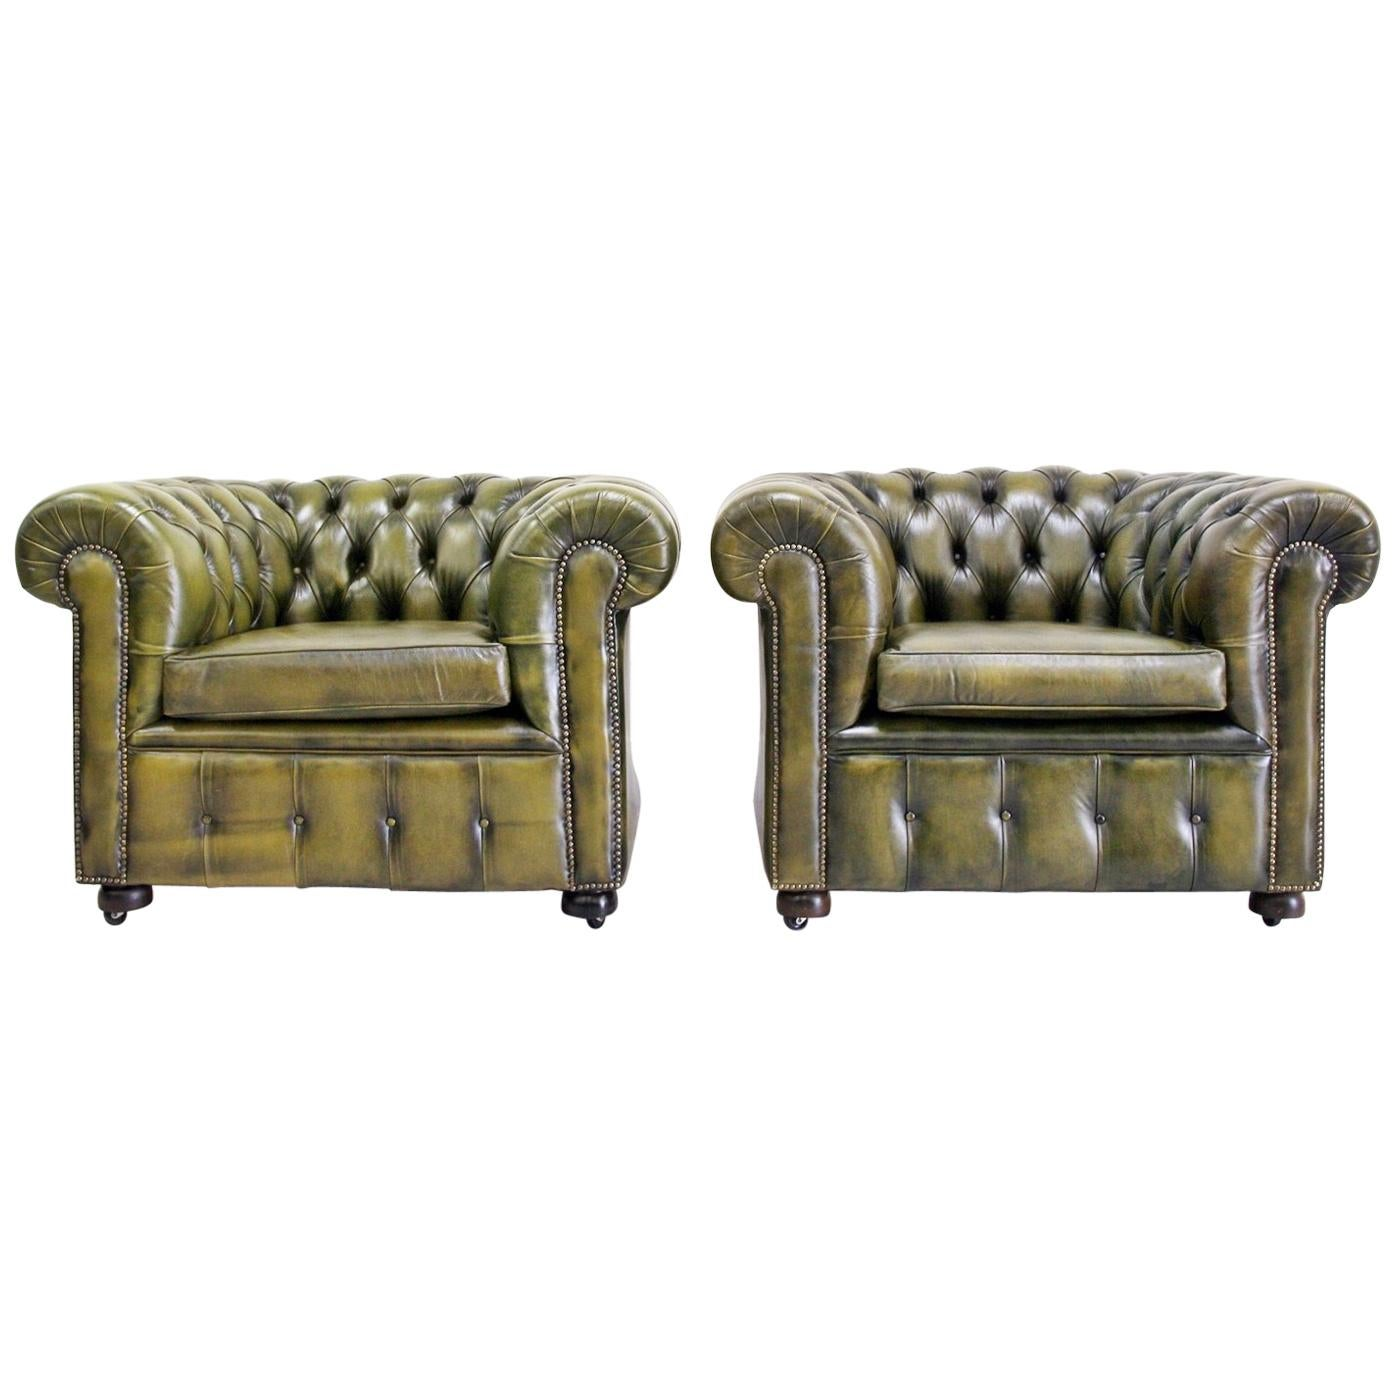 Two Chesterfield Club Armchair Leather English Armchair Baroque Antique For  Sale